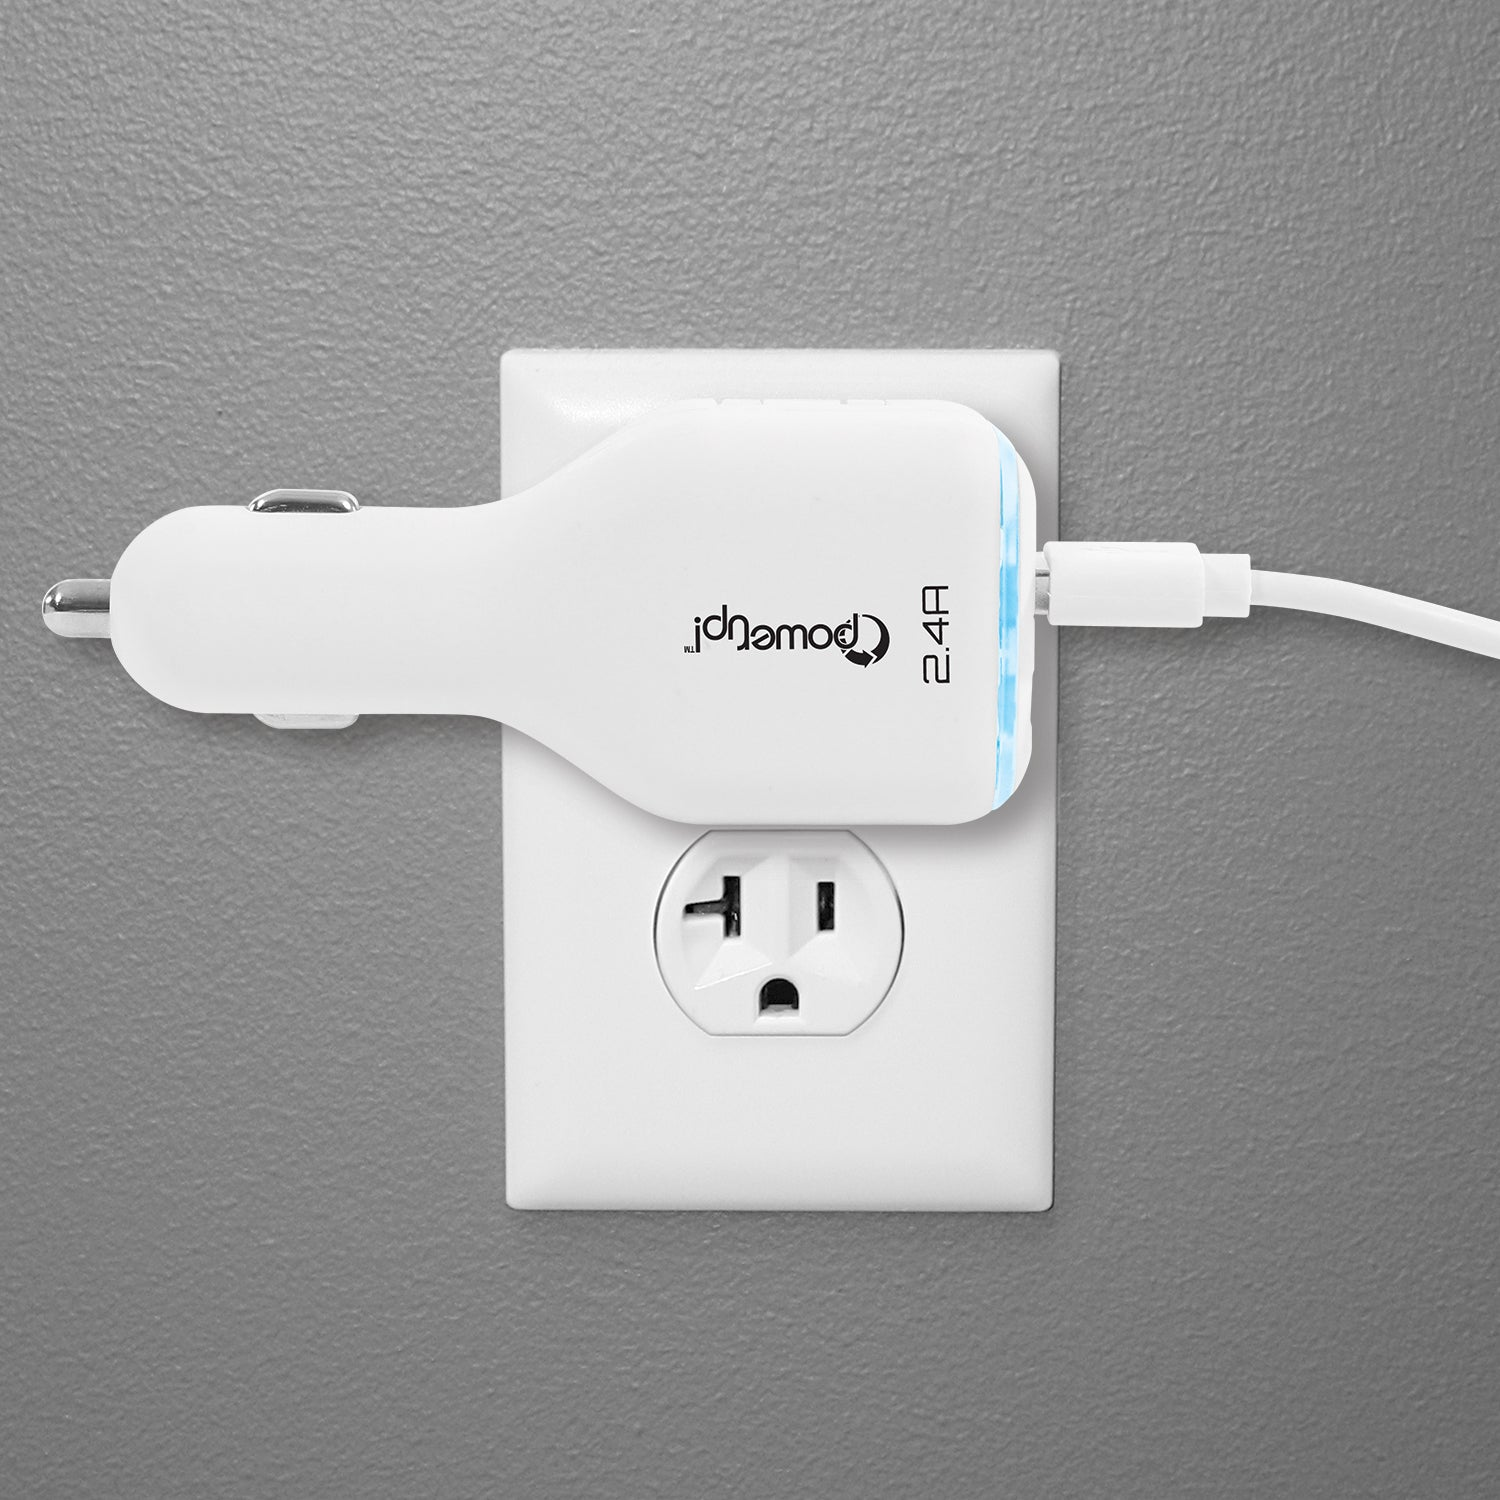 3-in-1 USB Charger with Lightning Cable 2.4A